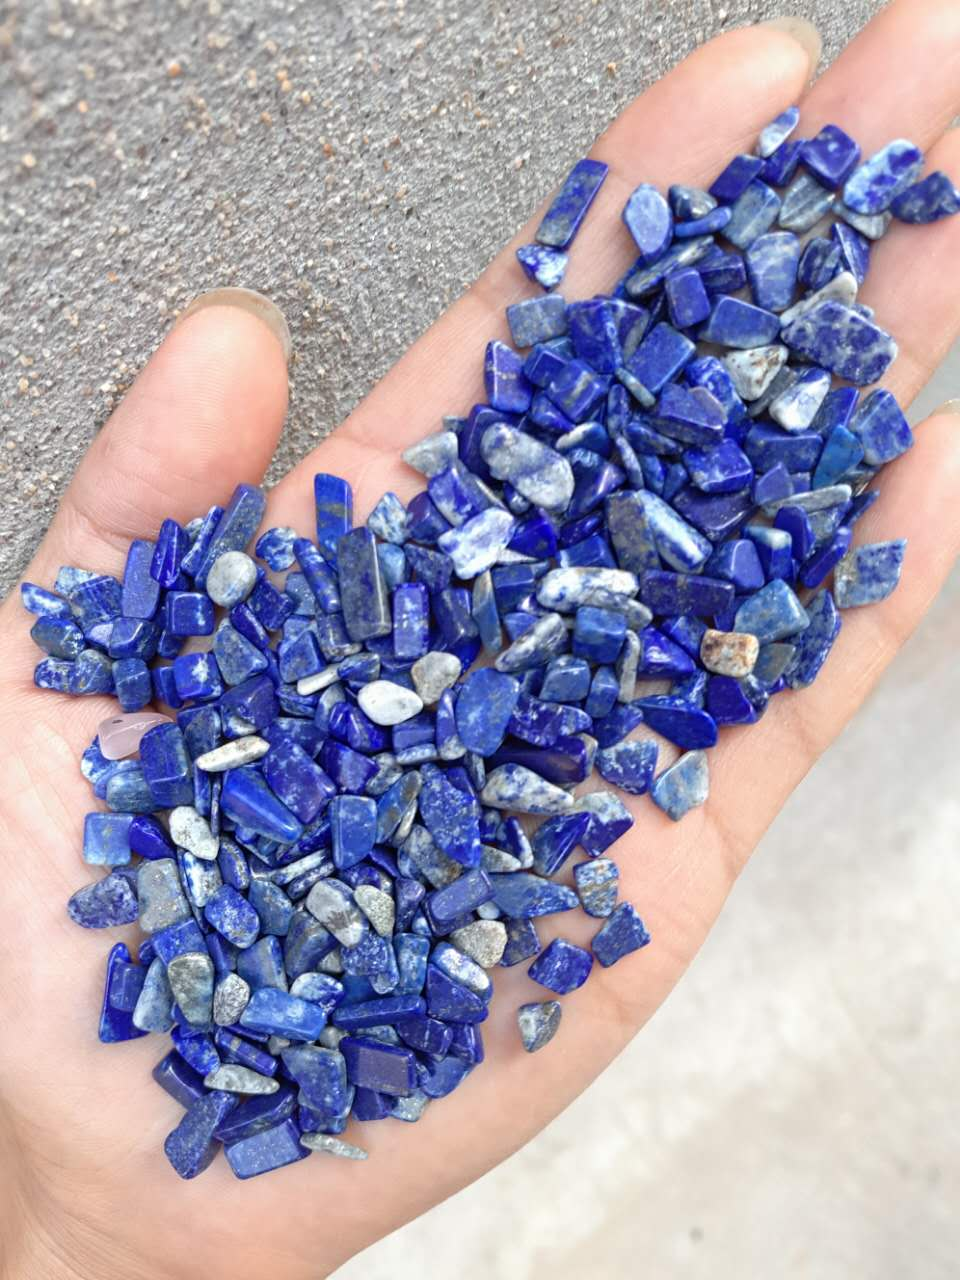 Luxury Natural Gemstones Lapis Lazuli Tumbles Blue Gravel and Pebbles Stone